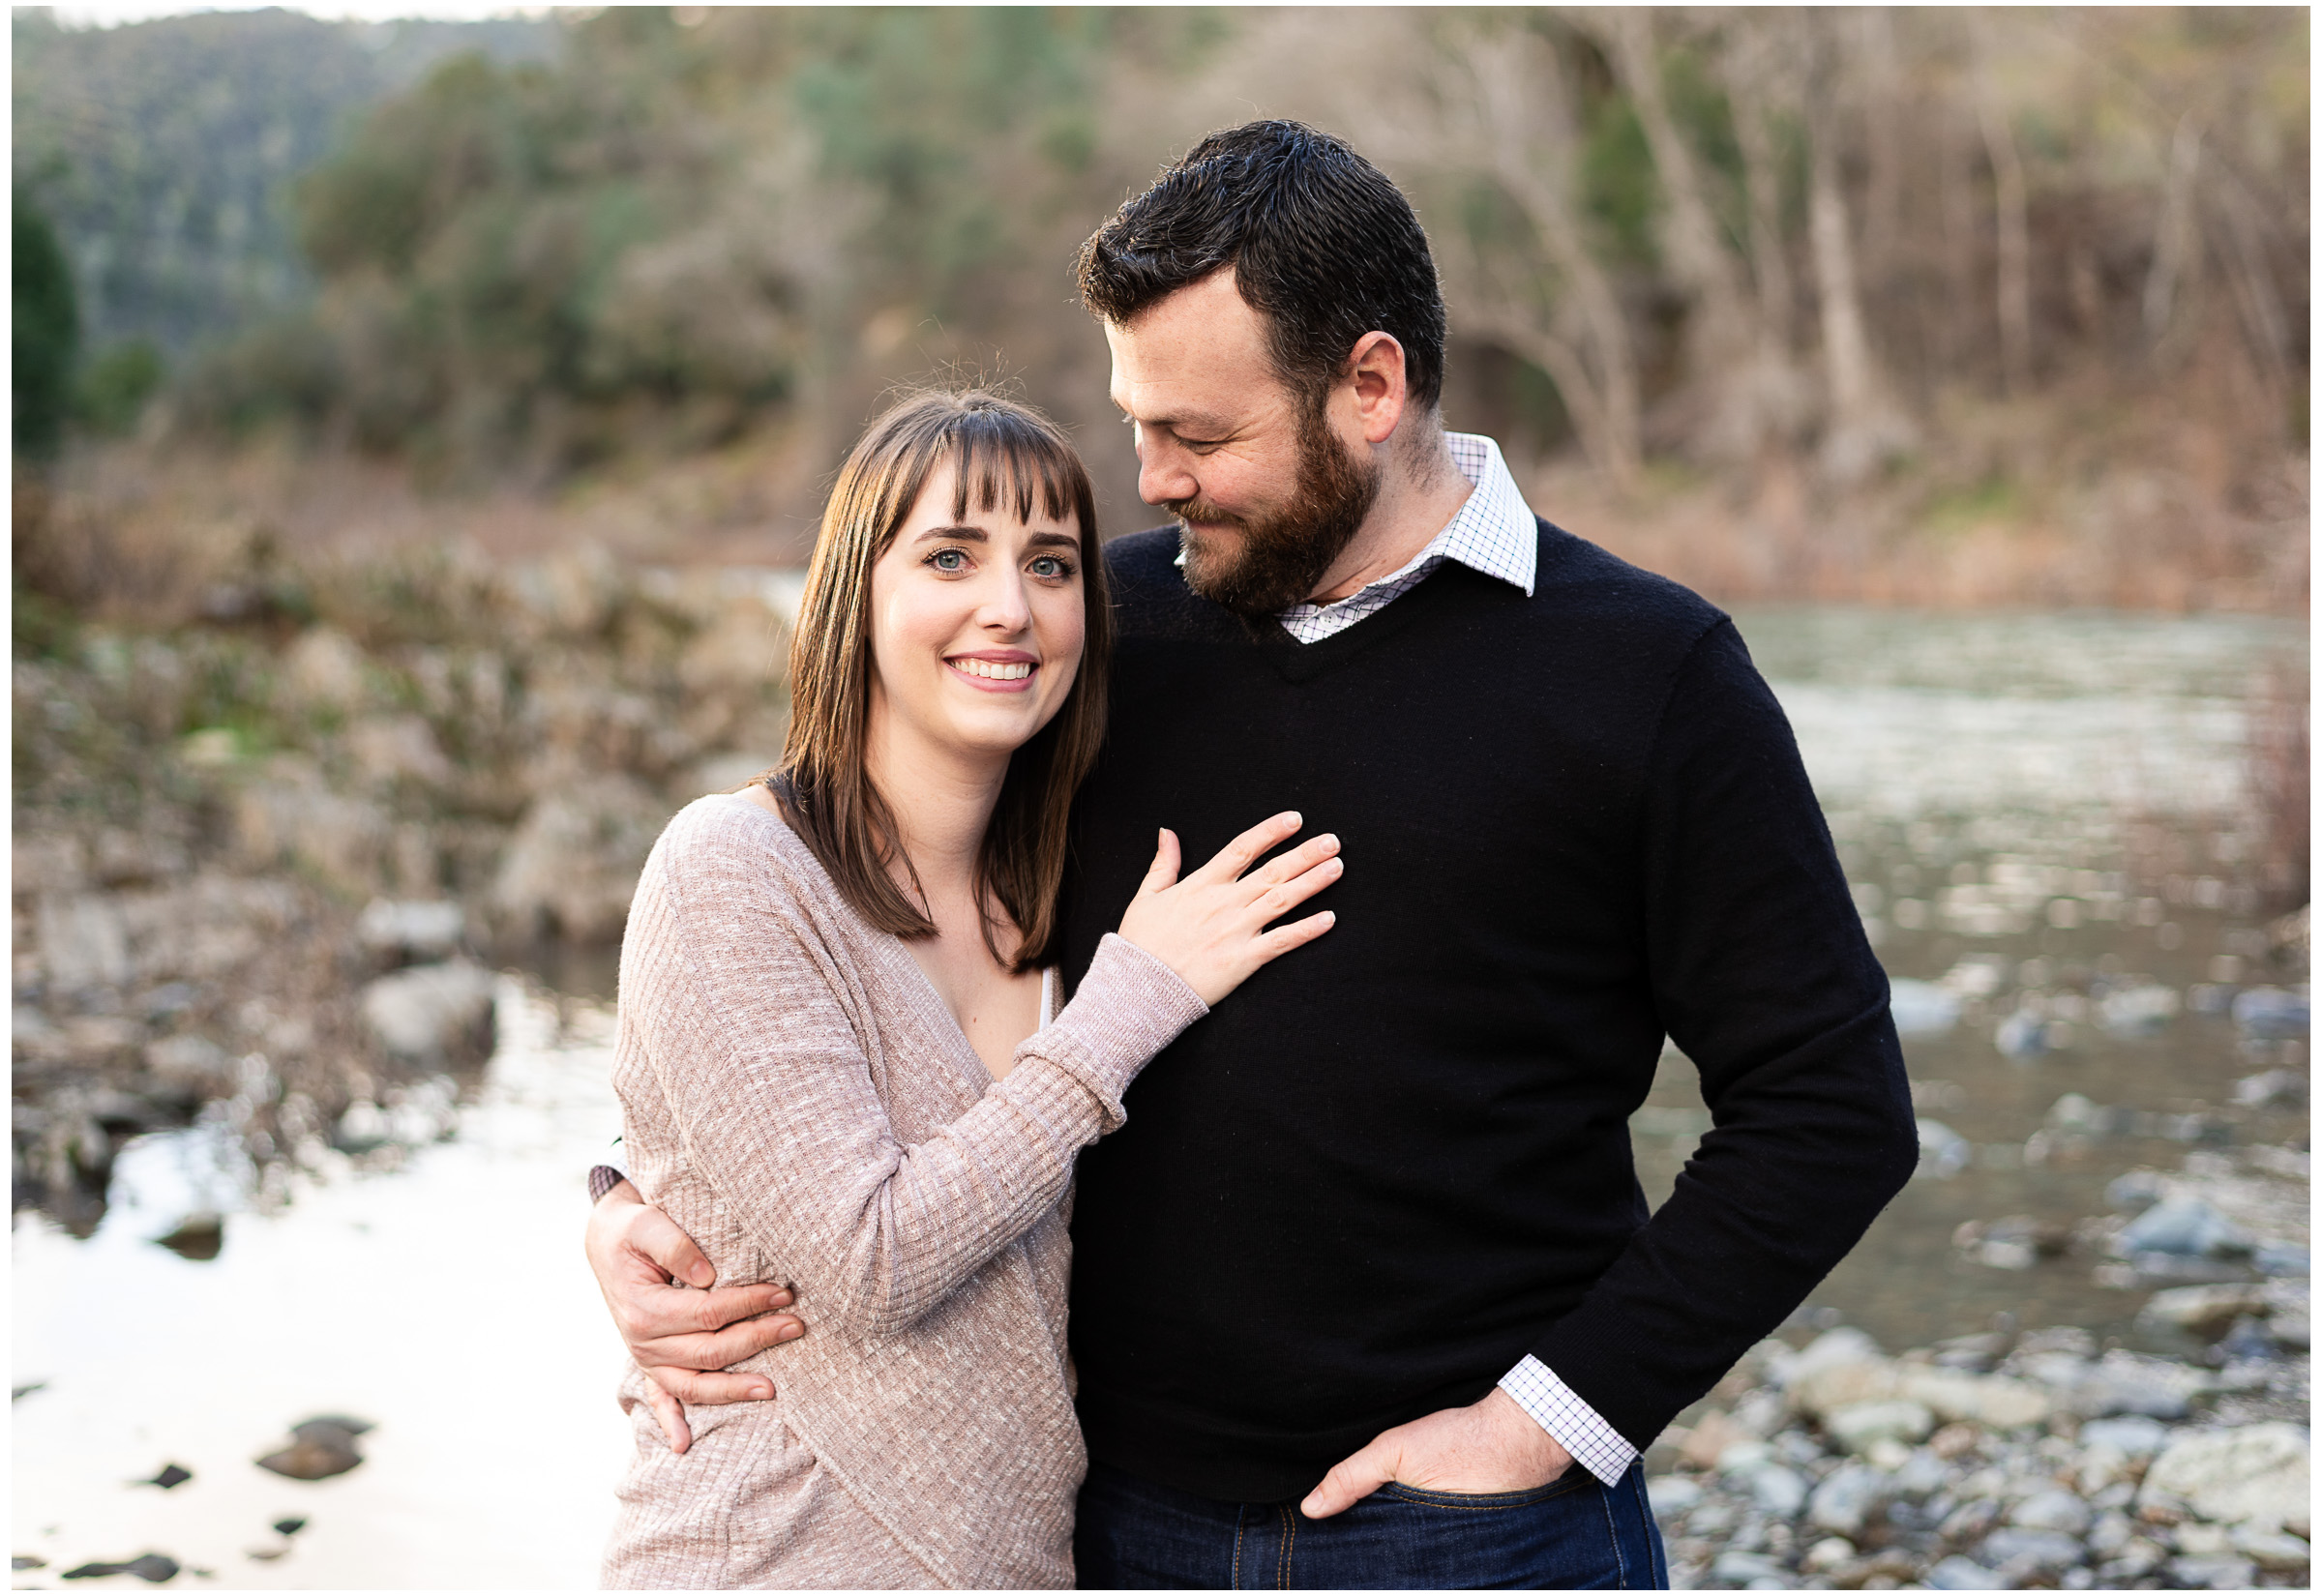 Auburn Engagement Session - Sacramento Photographer - Justin Wilcox Photography - 11.jpg